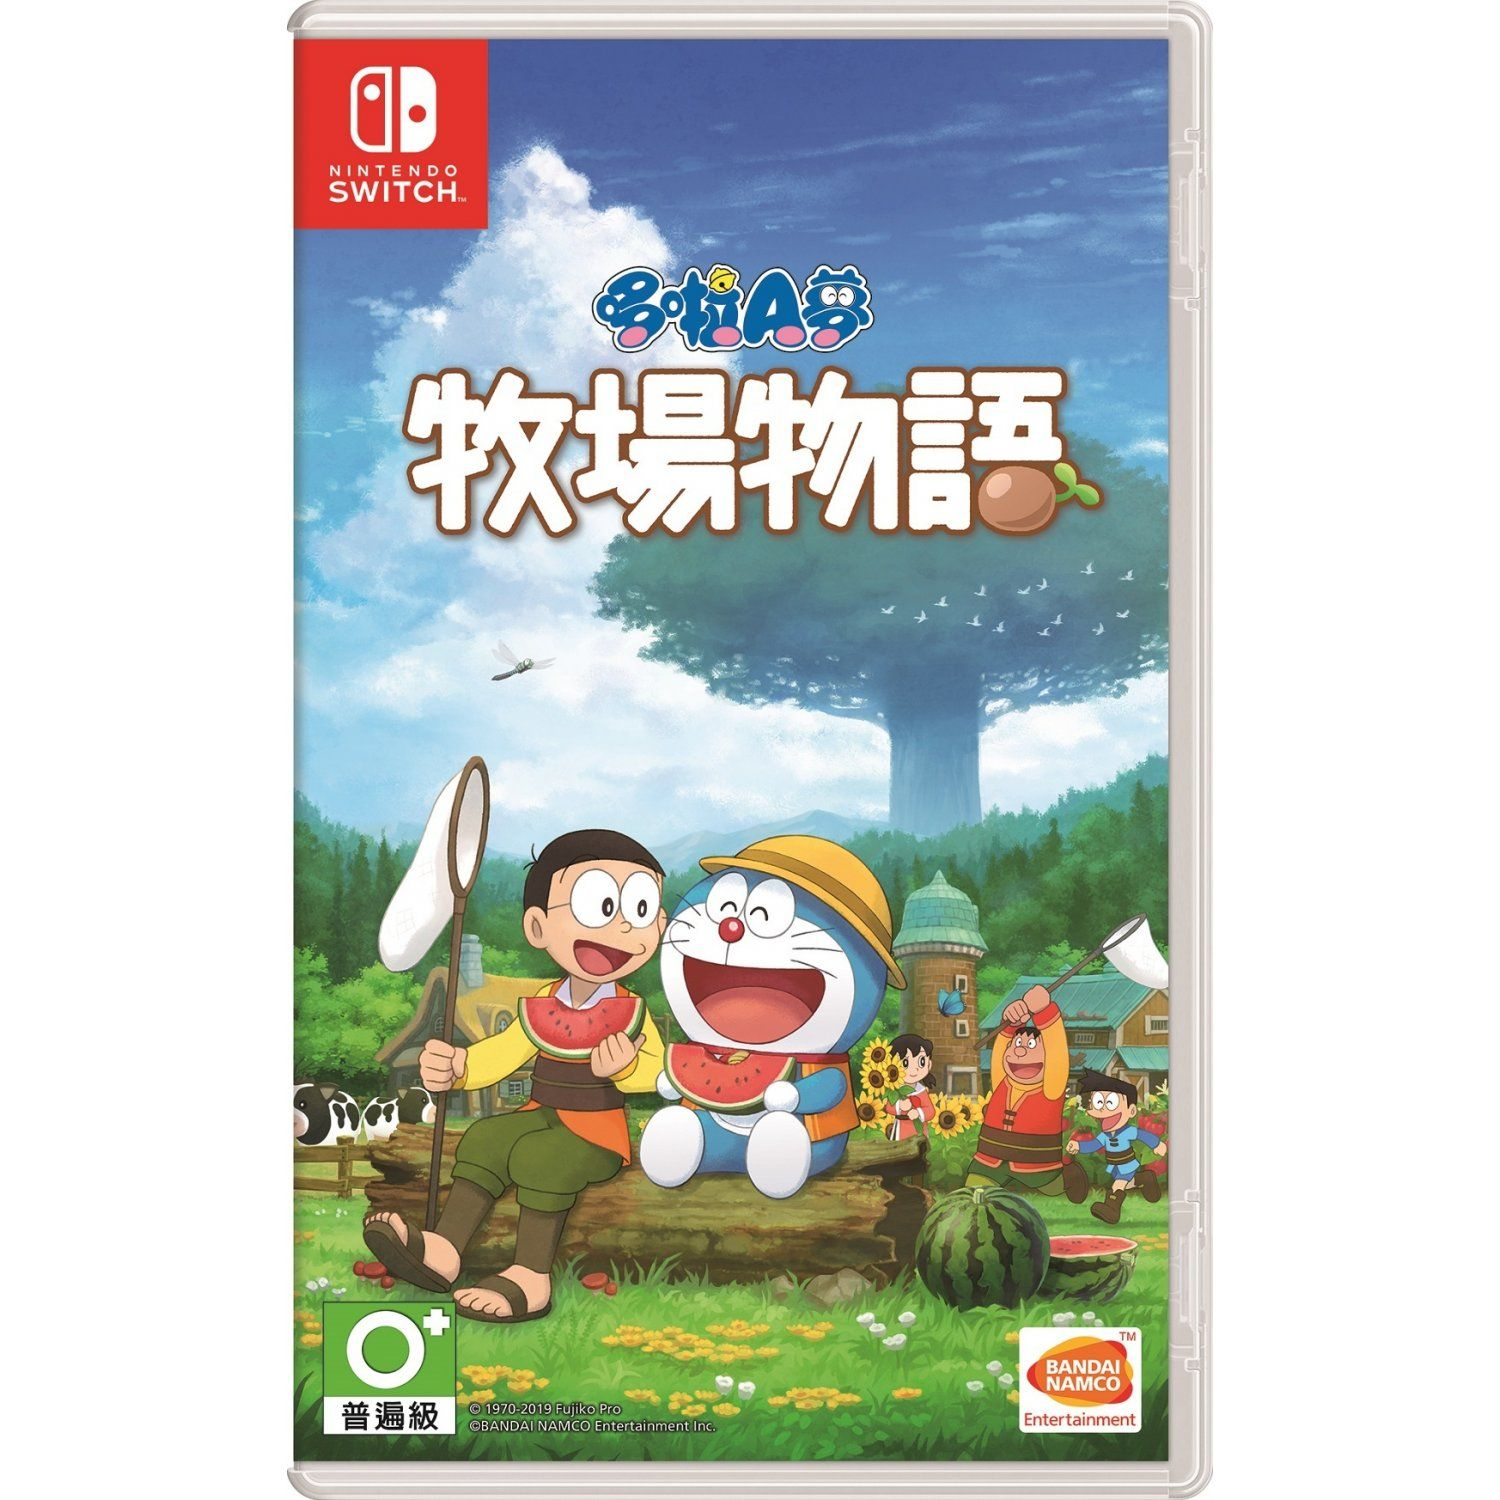 Pin By Gamer Pichu On Nintendo Switch Games ゲーム Nintendo Doraemon Nintendo Switch